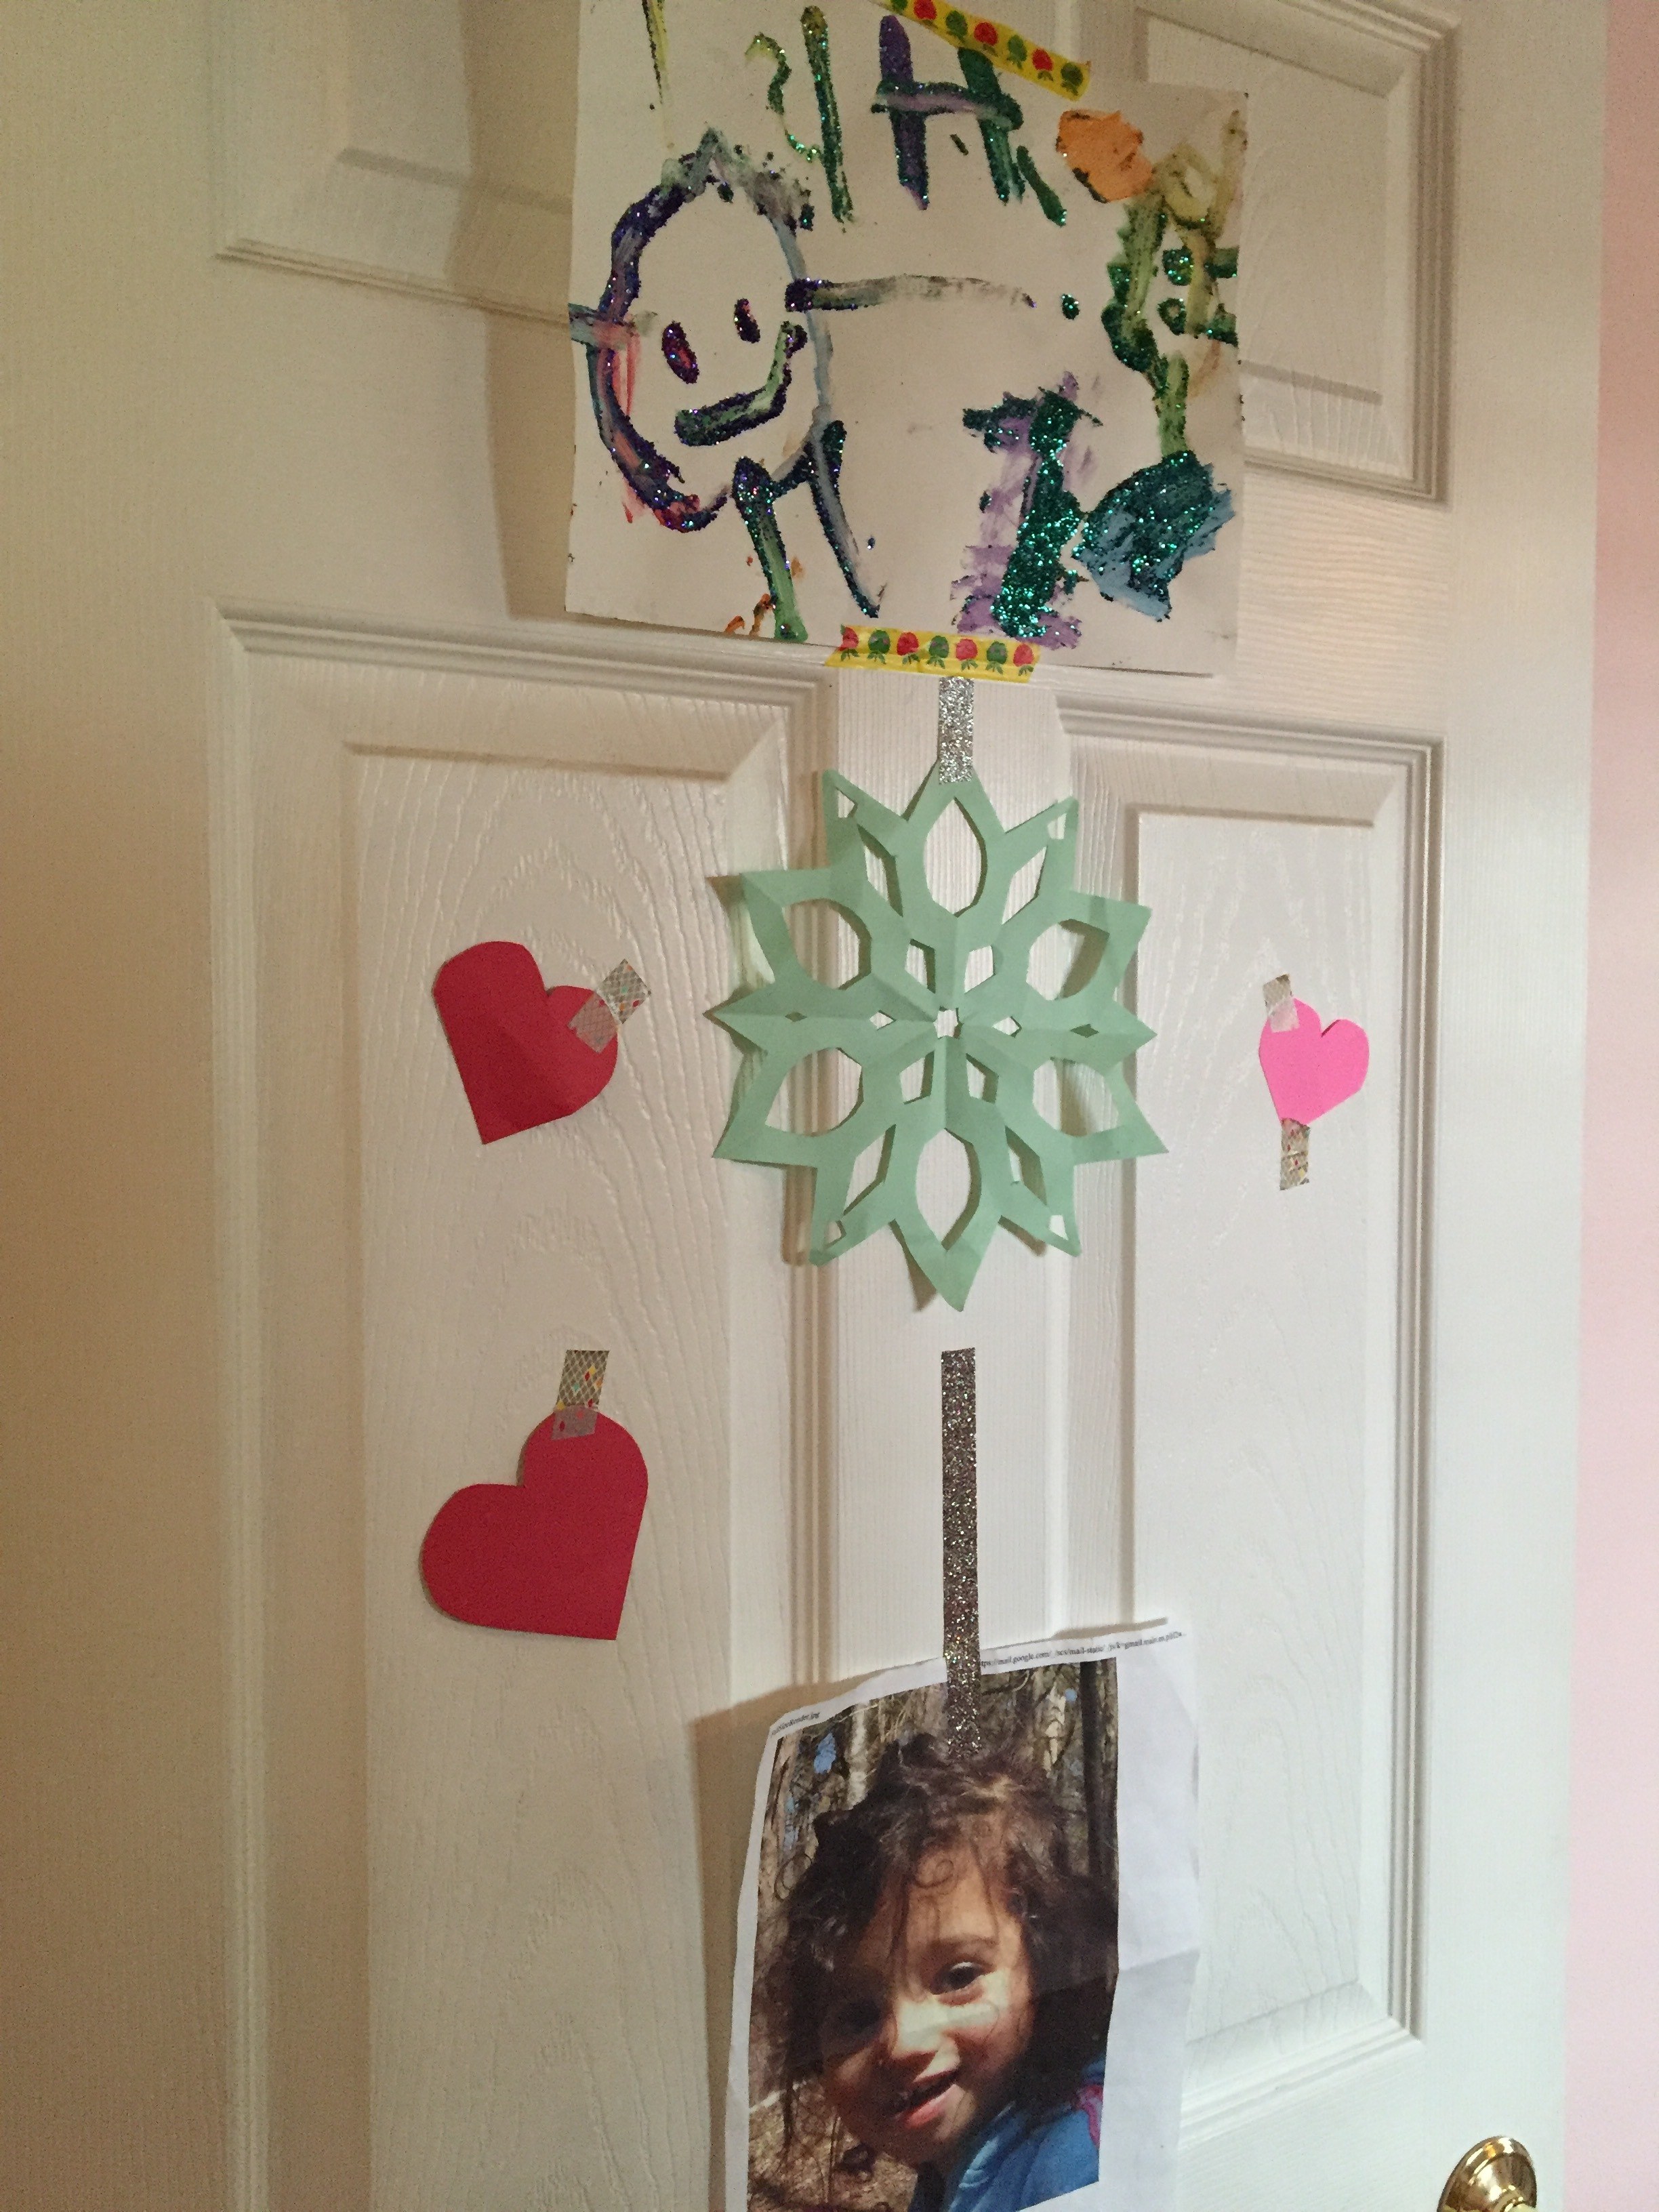 Meena's Door: We put up whatever she wants on that door, so she gets to do all the decorating.  Everything is stuck on with washi tape, which is the BEST thing you can have when it comes to decorating a kid's room.